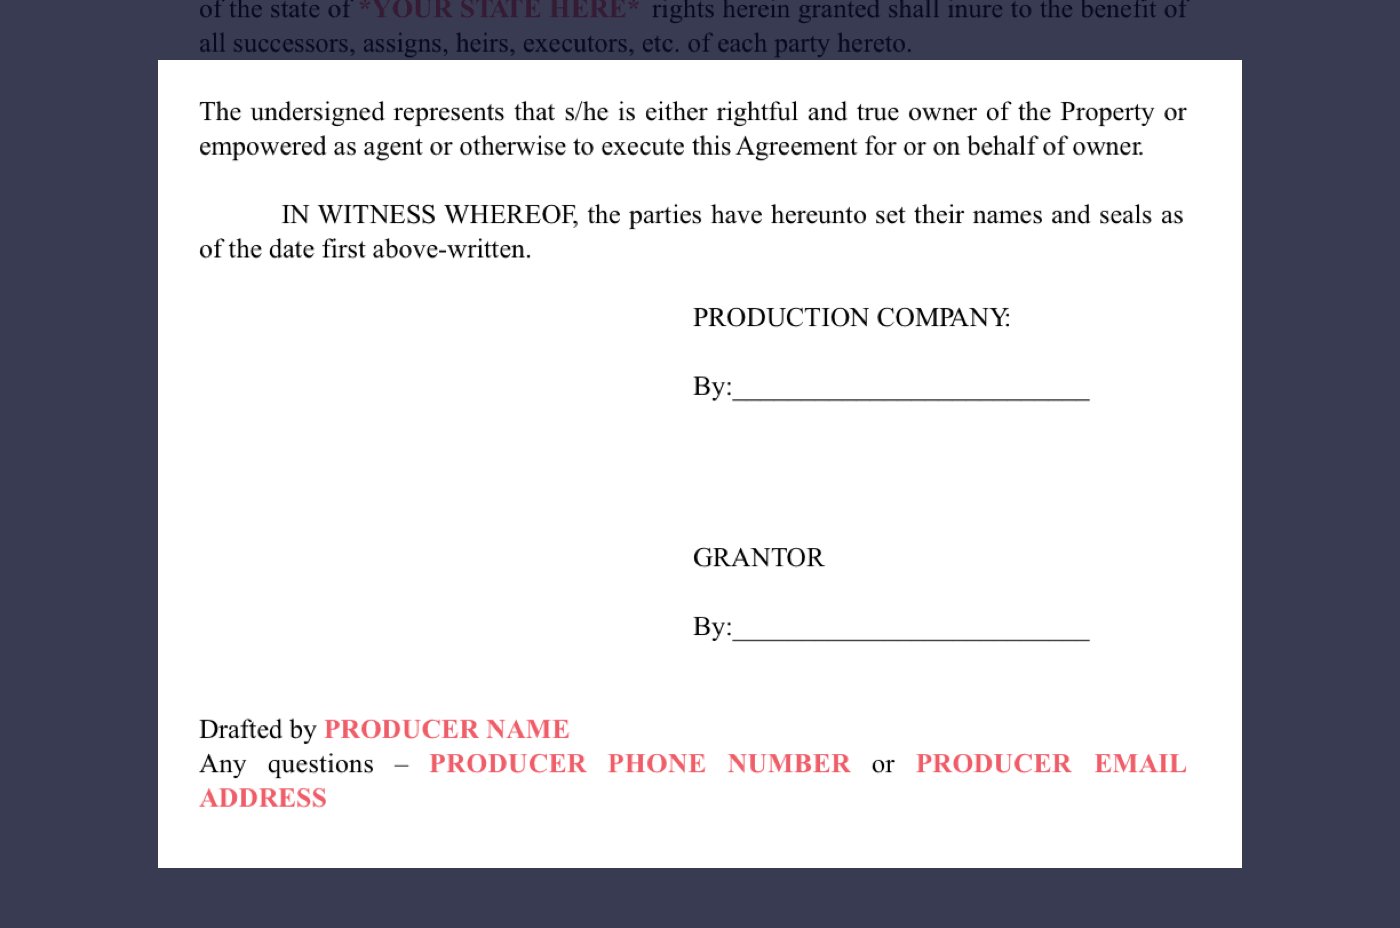 How to Secure Film Locations - Location Release Form